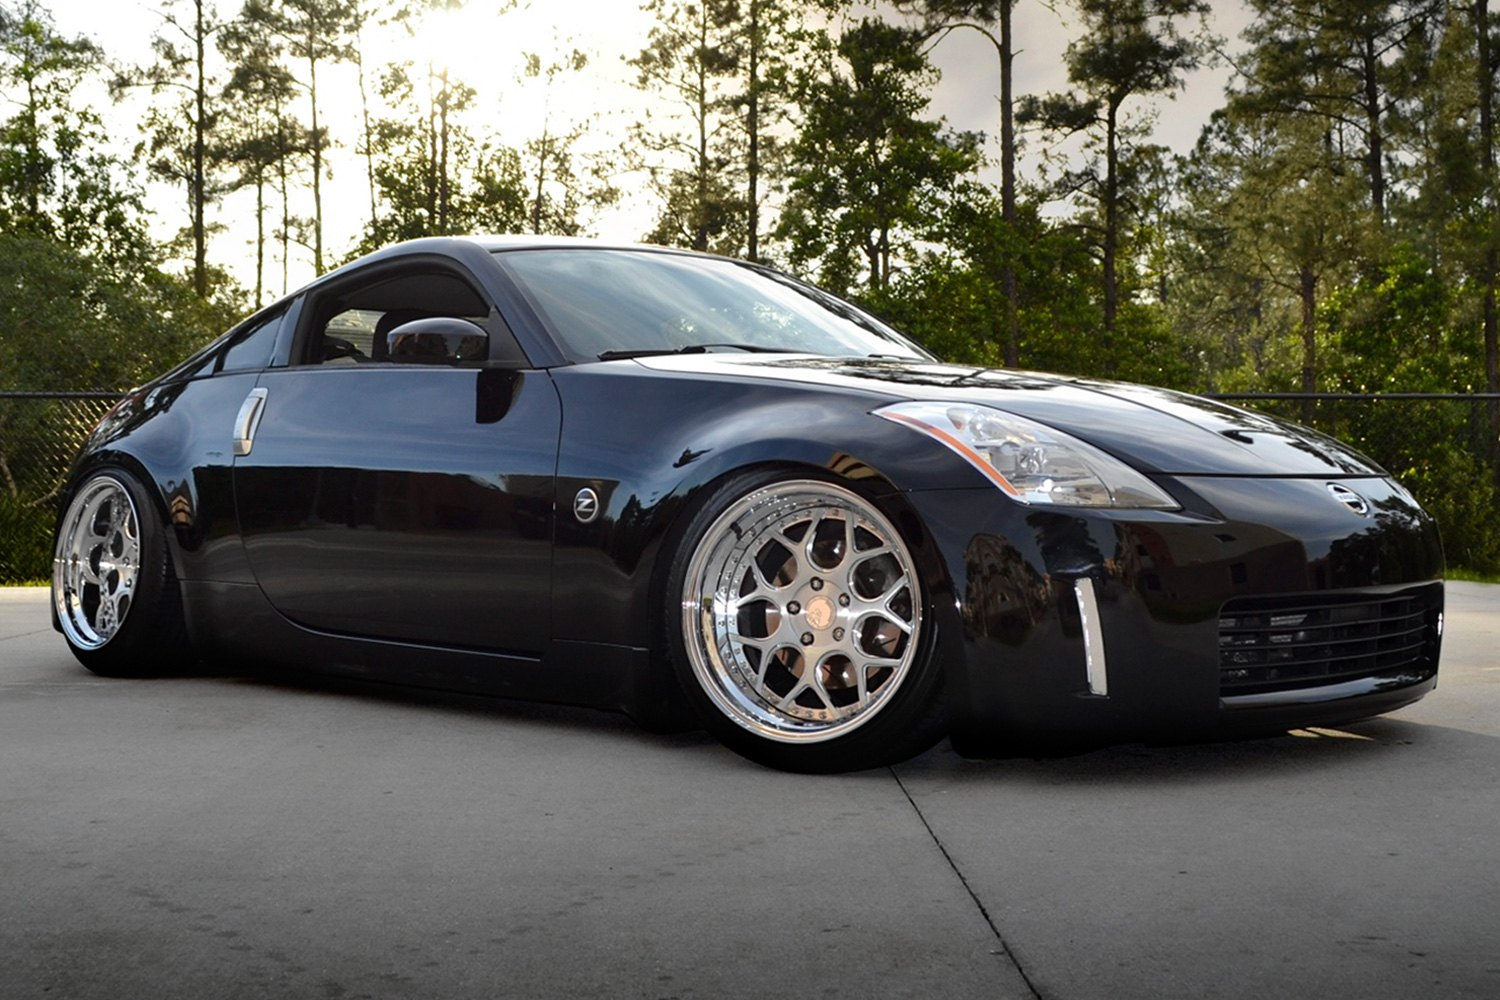 nissan 350z 350z rims custom rims and tires autos post. Black Bedroom Furniture Sets. Home Design Ideas